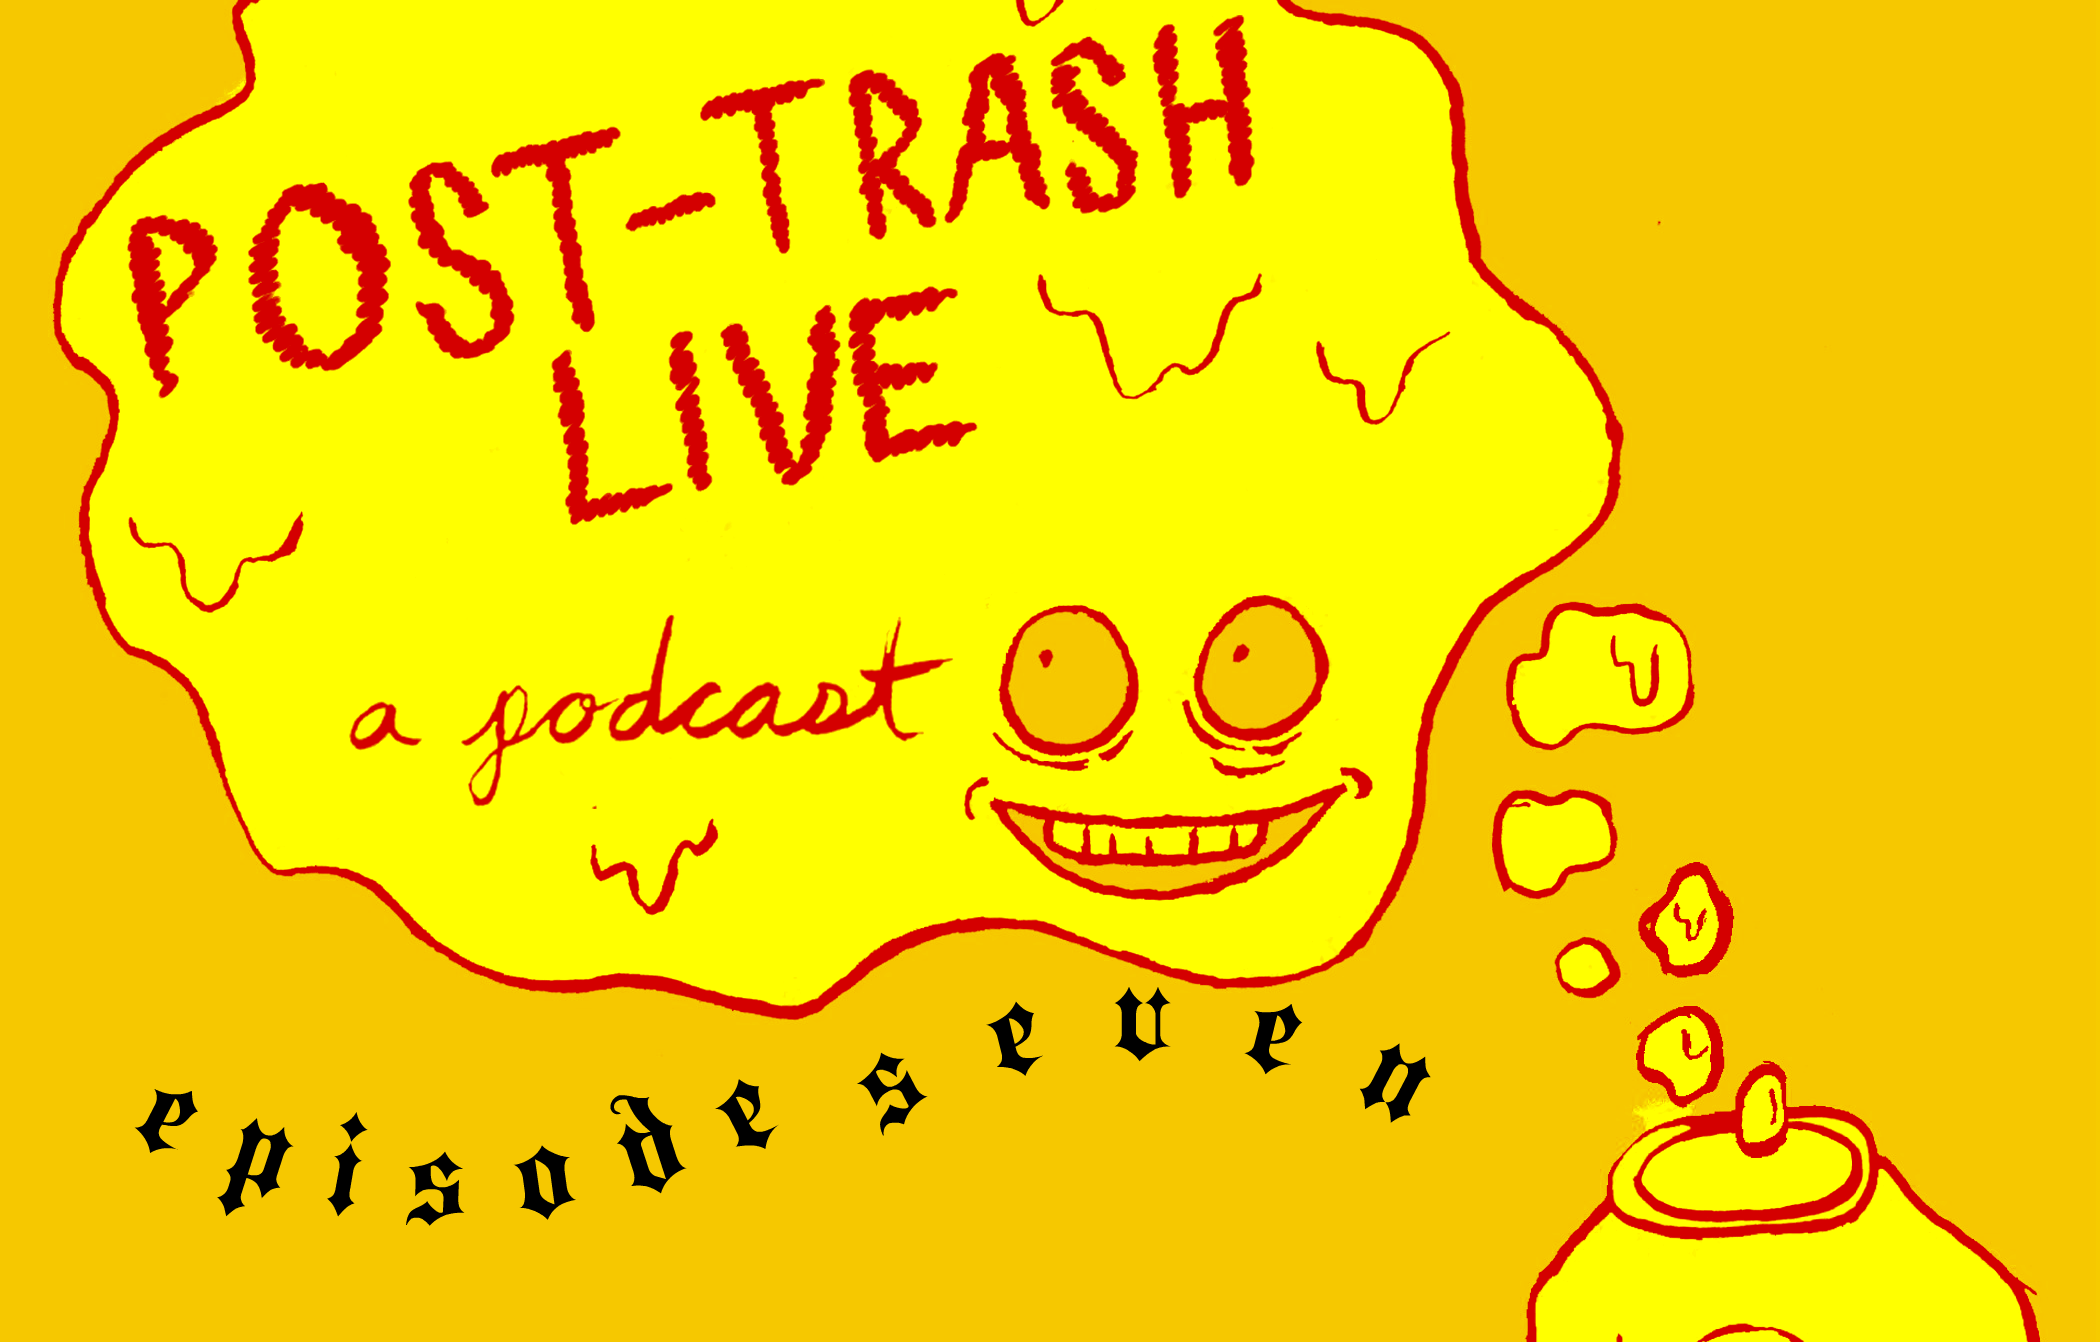 post-trash-podcast_2.png